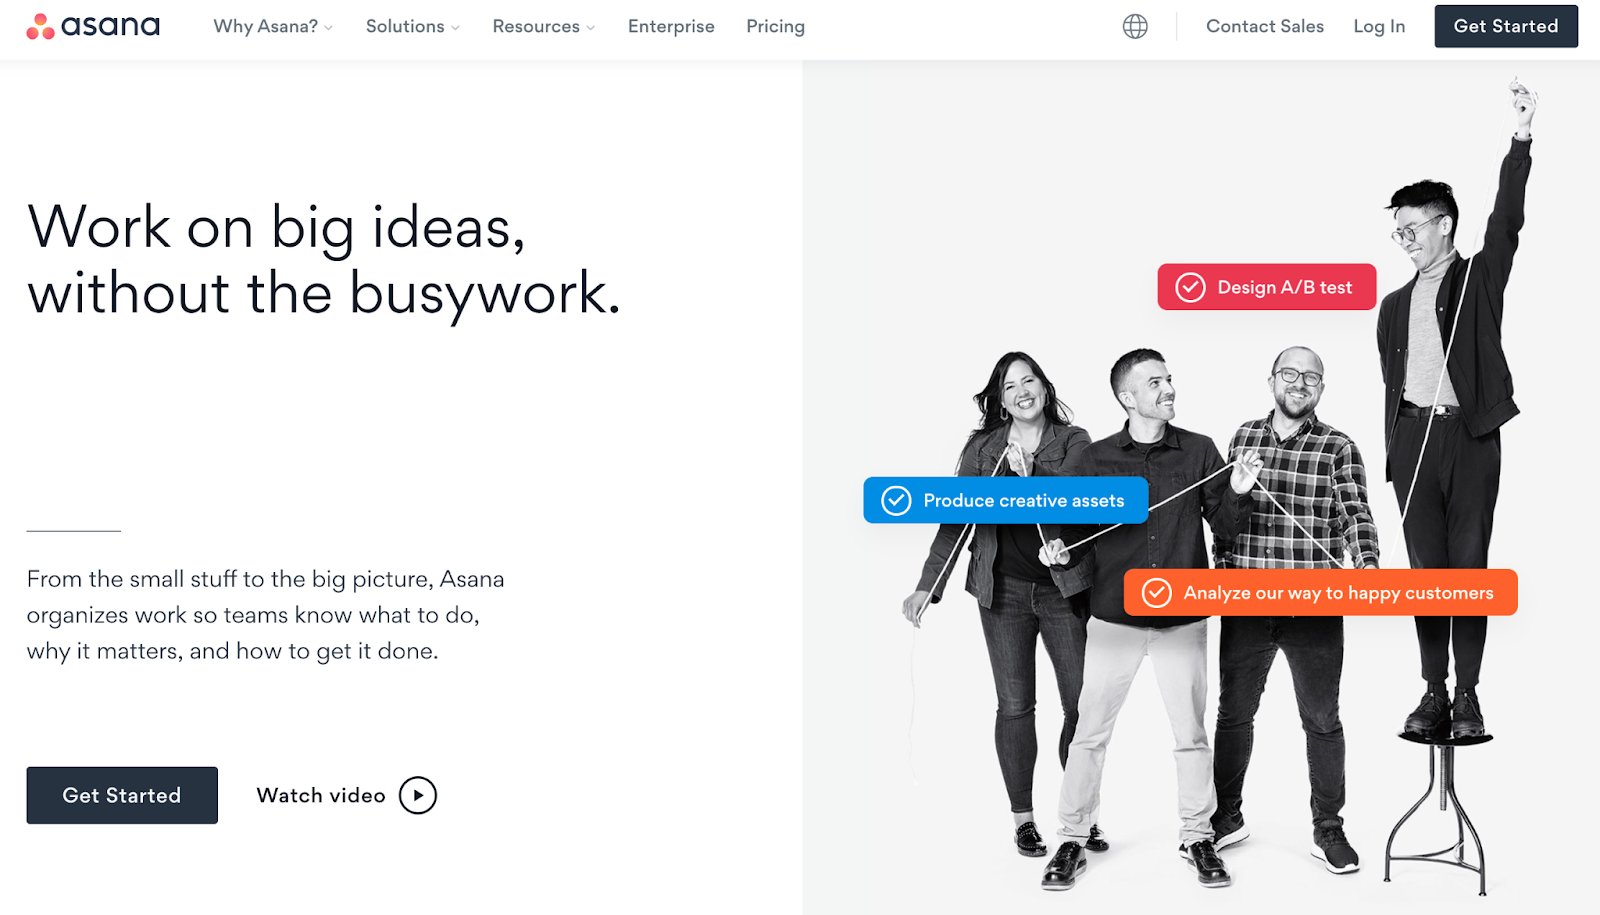 asana project management software for freelancers